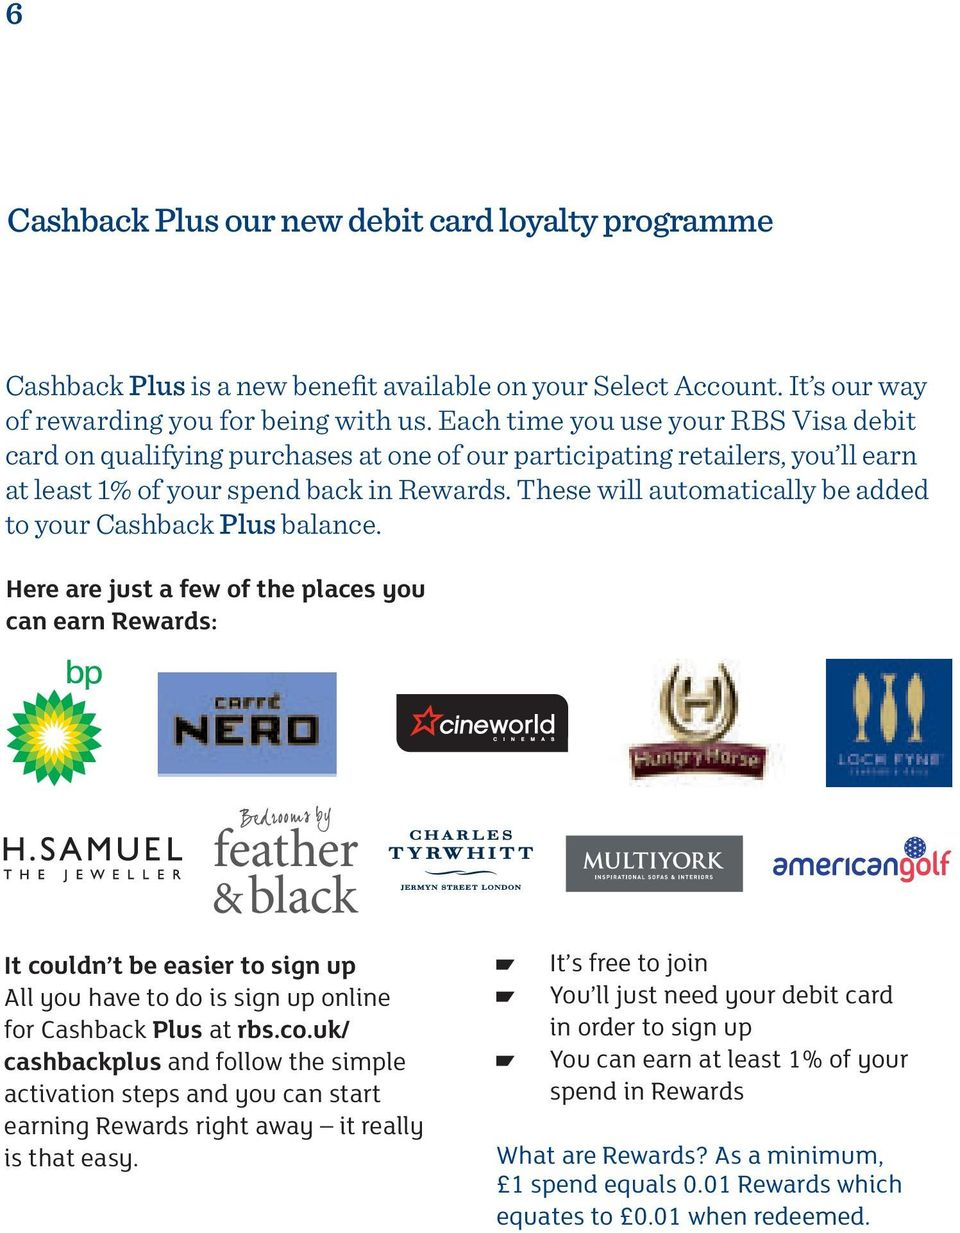 back in Rewards. These will automatically be added to your Cashback Plus balance. Cashback Plus is a new benefit available on your Select Account. It s our way of rewarding you for being with us.